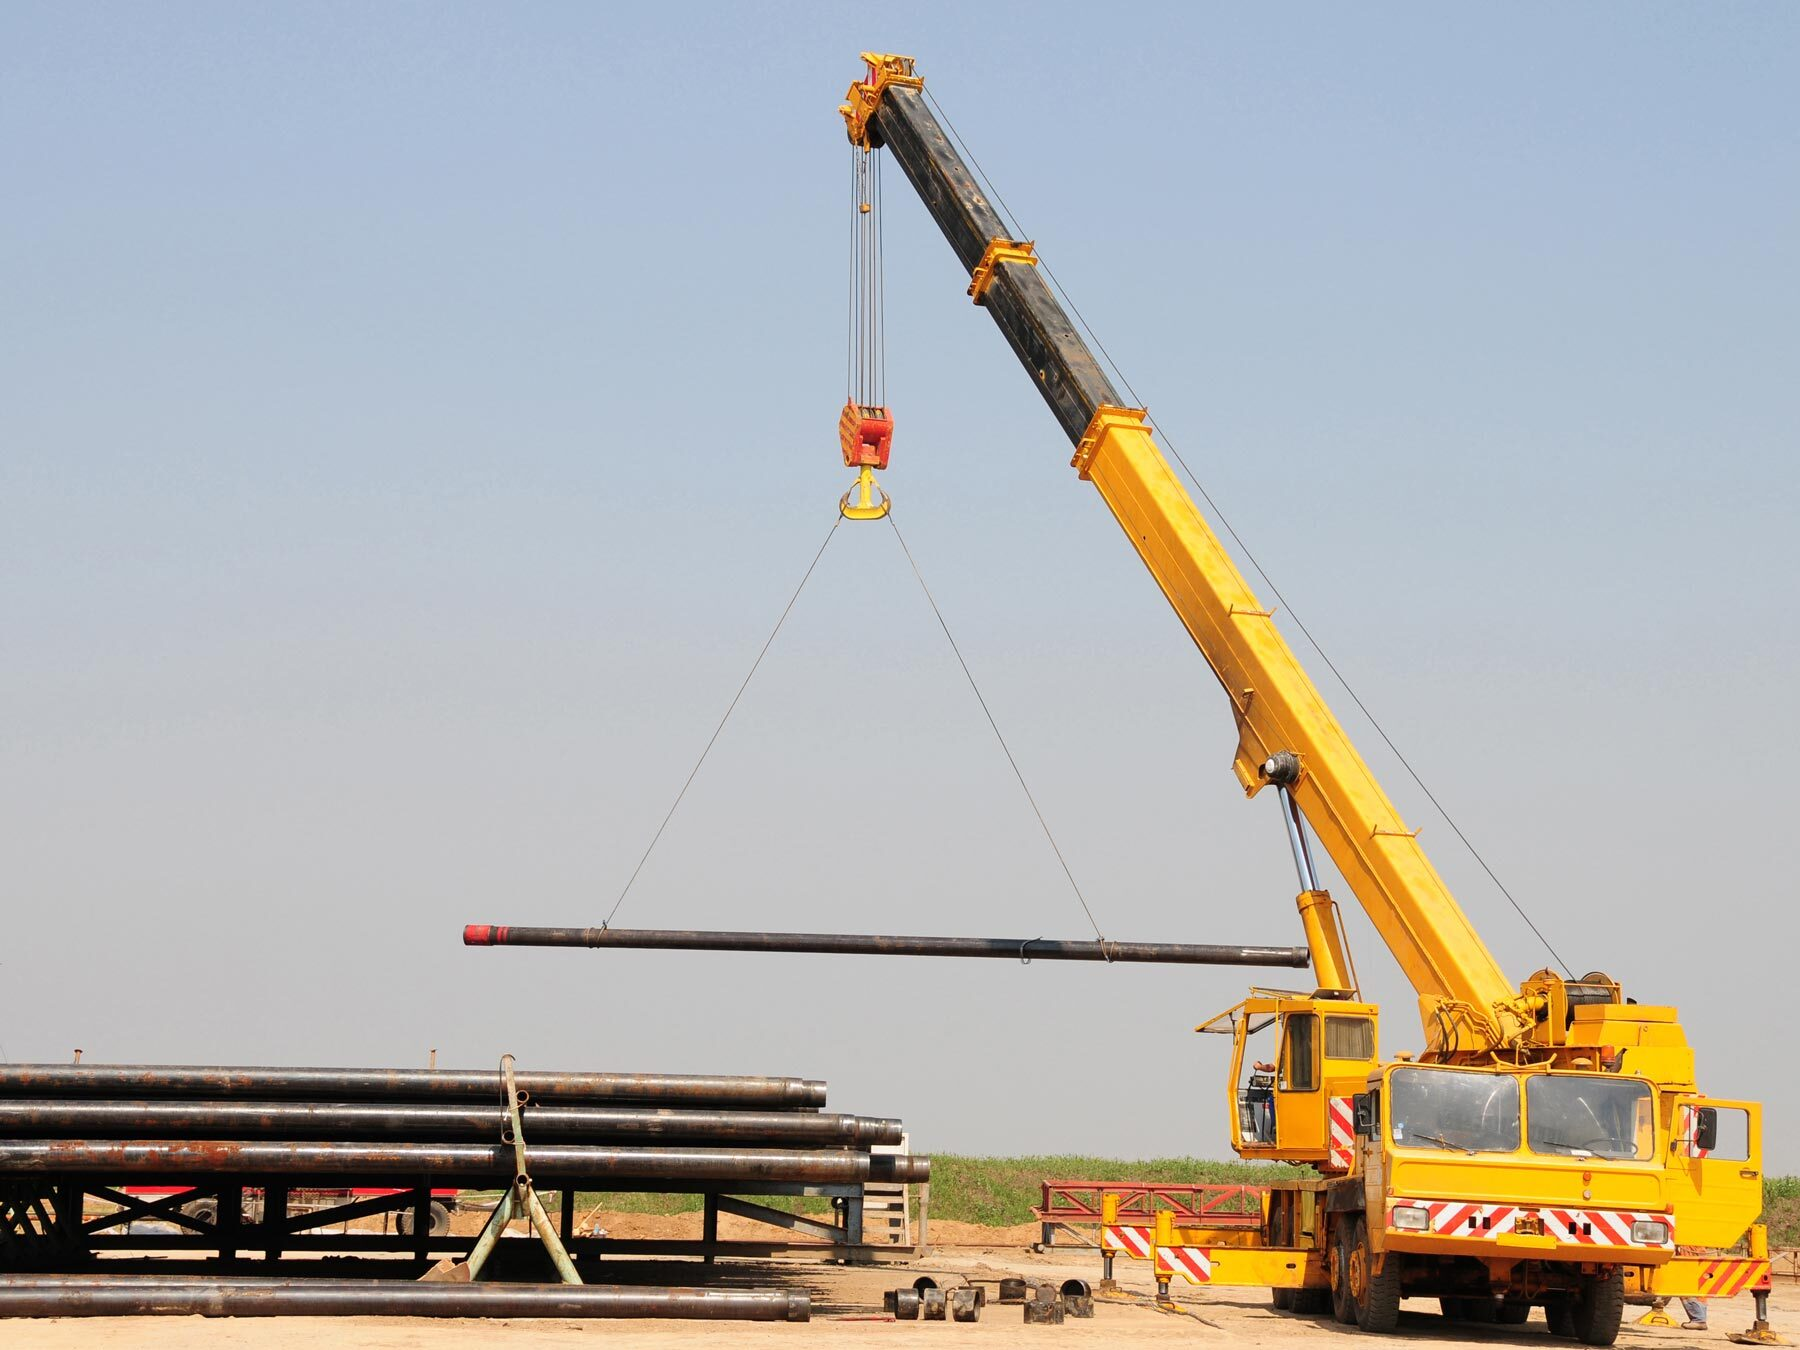 11 Crane Safety Tips to Prevent Accidents